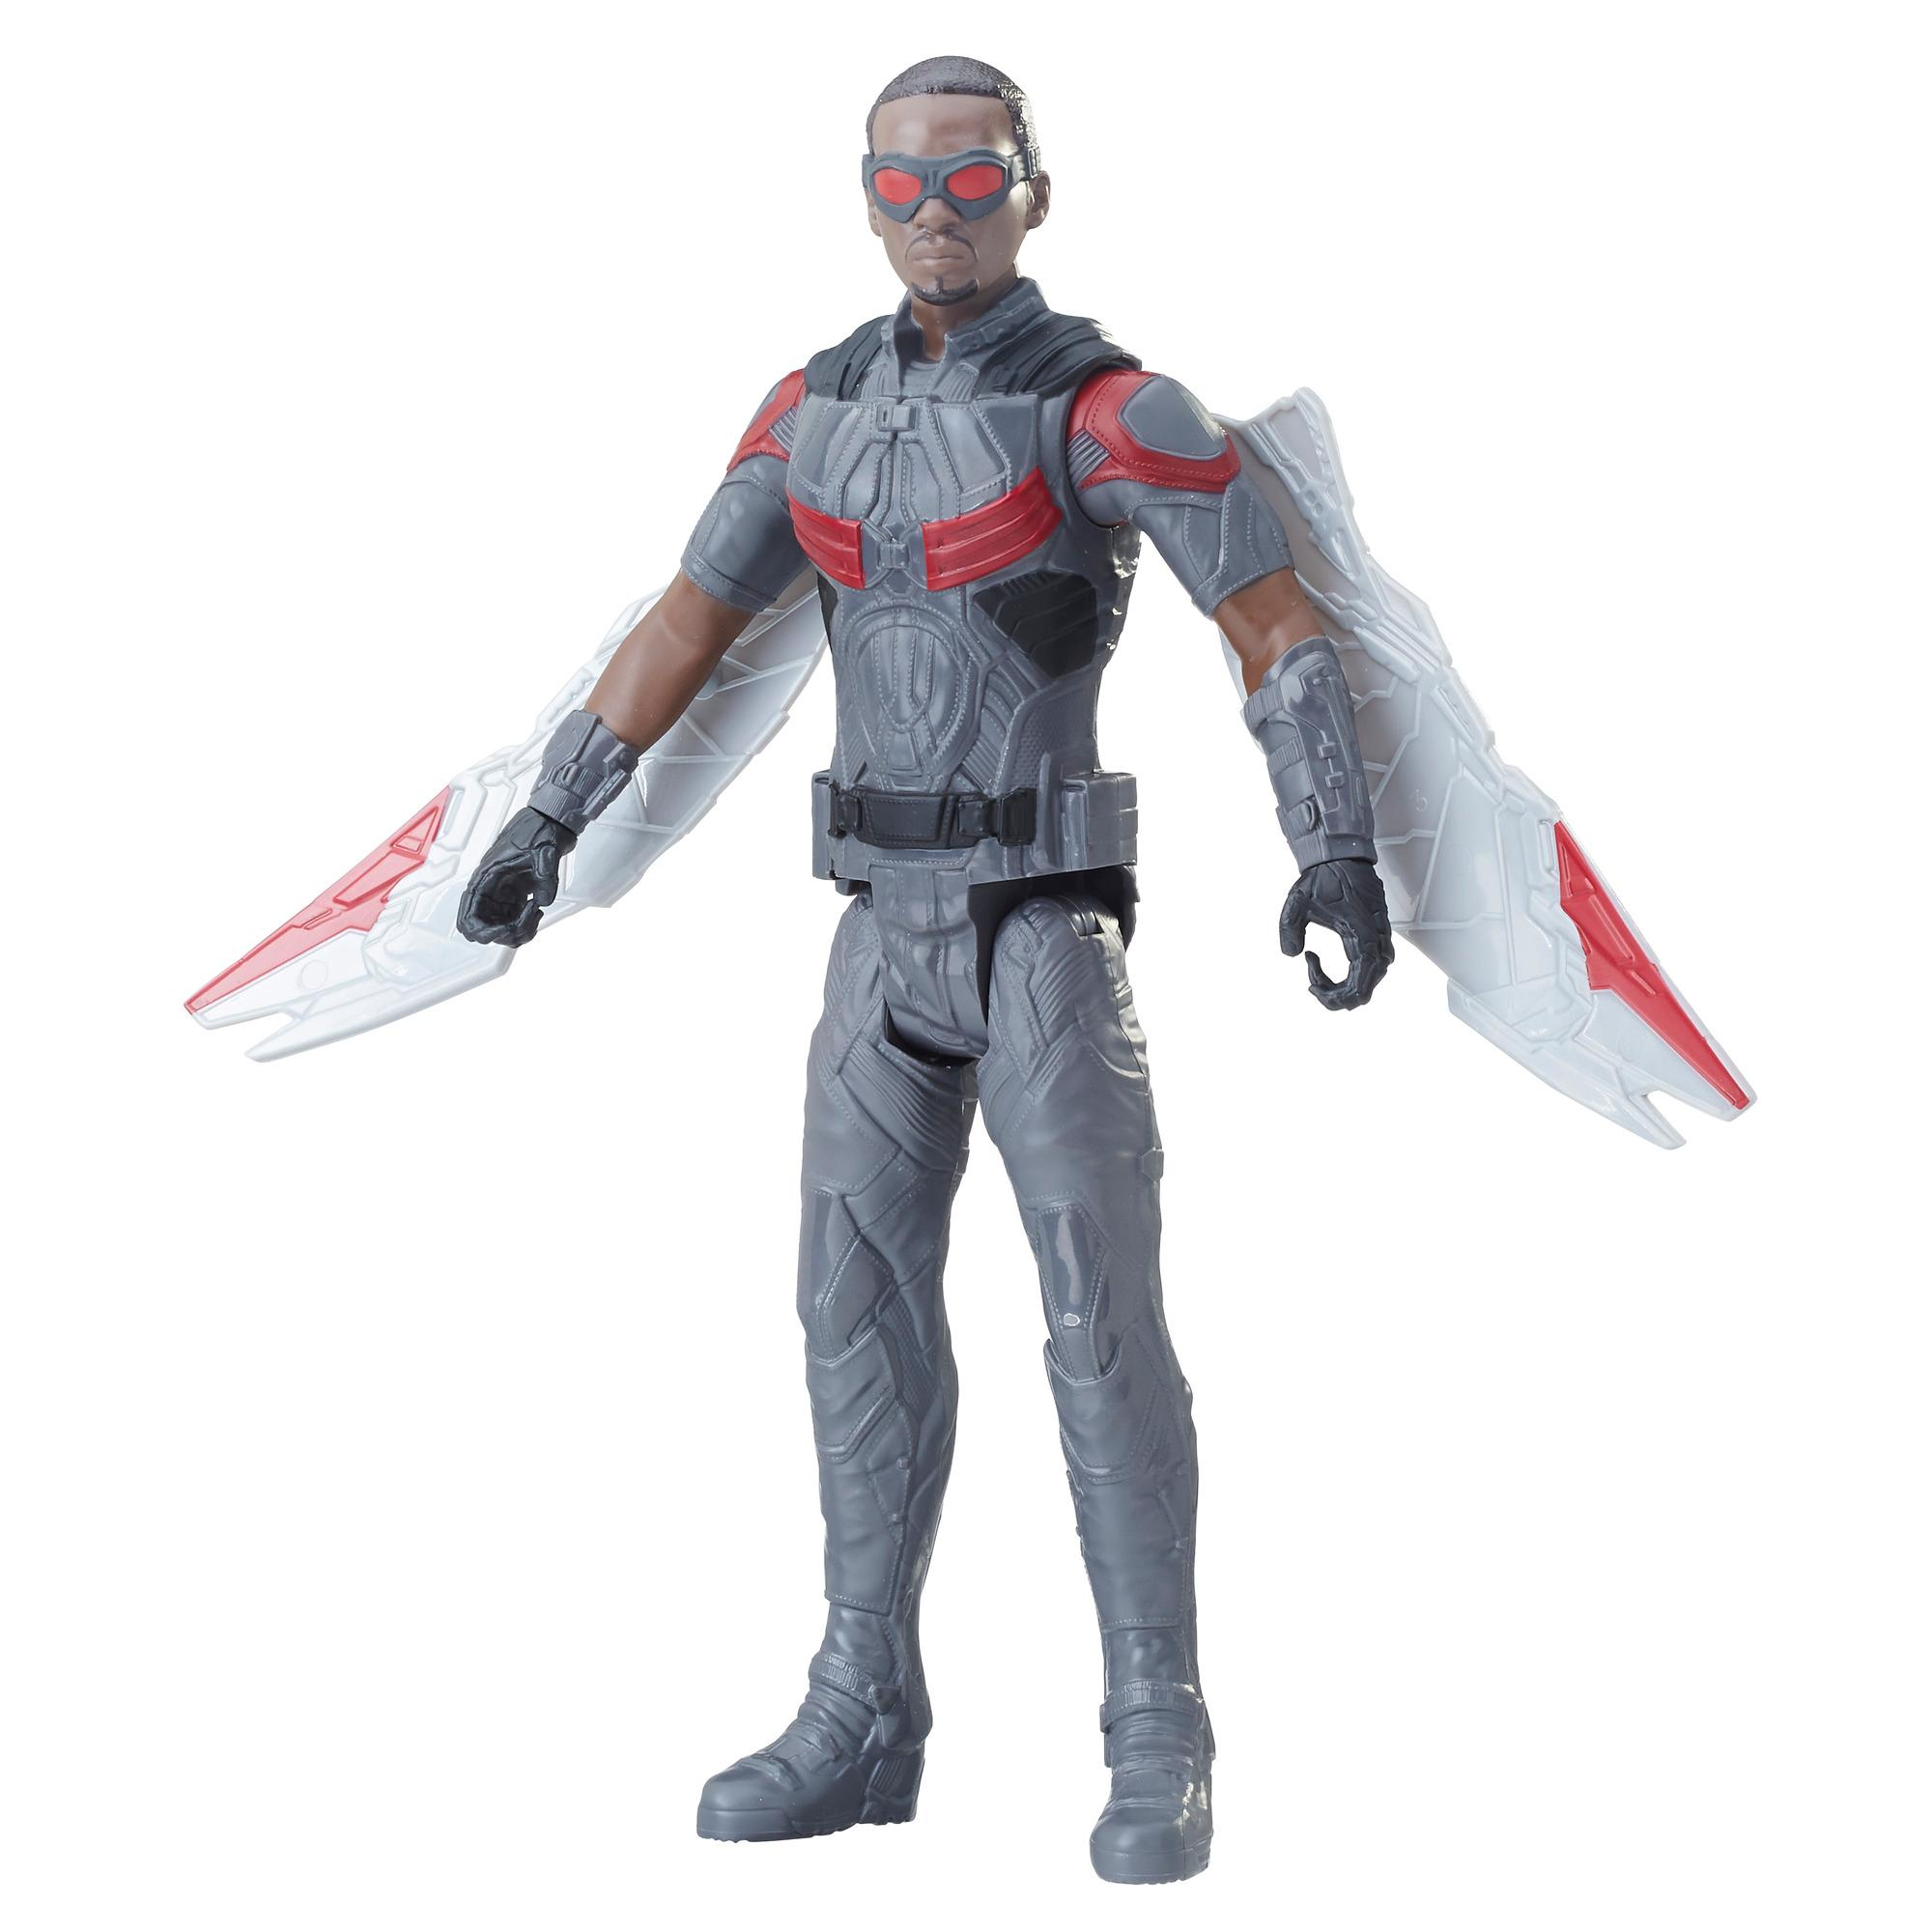 Marvel Infinity War Titan Hero Series - Marvel's Falcon con puerto para Titan Hero Power FX